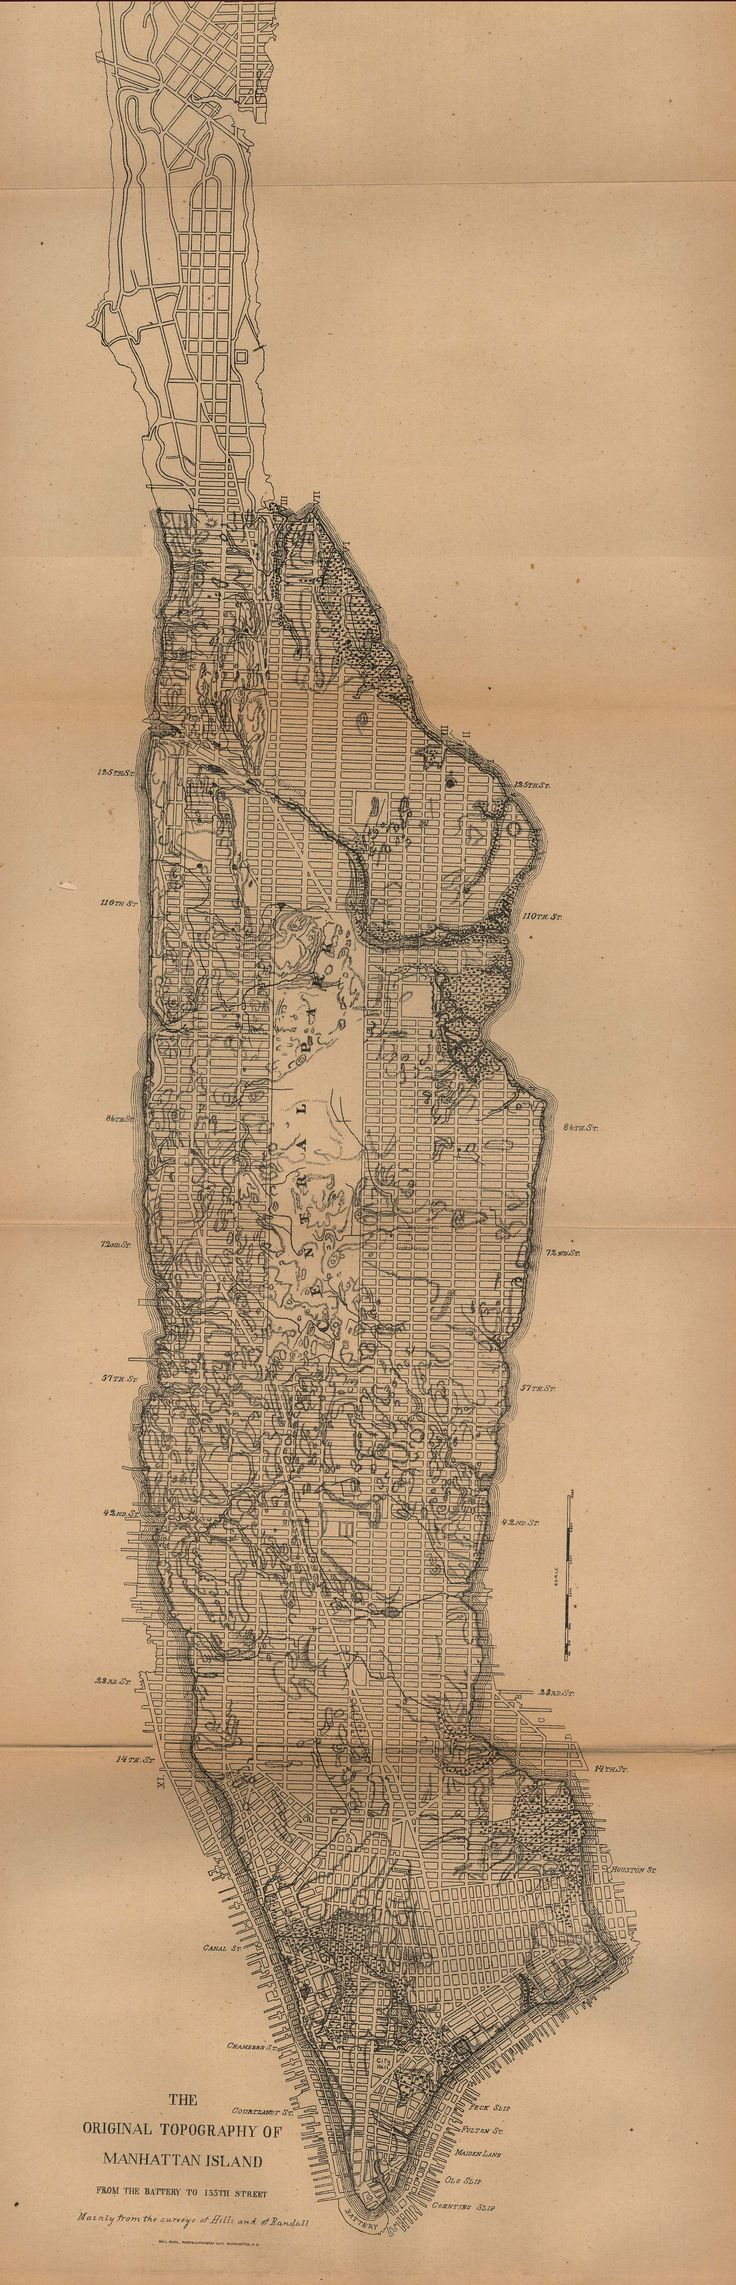 Manhattan Island, New York City: from the Battery to 155th Street (1880)